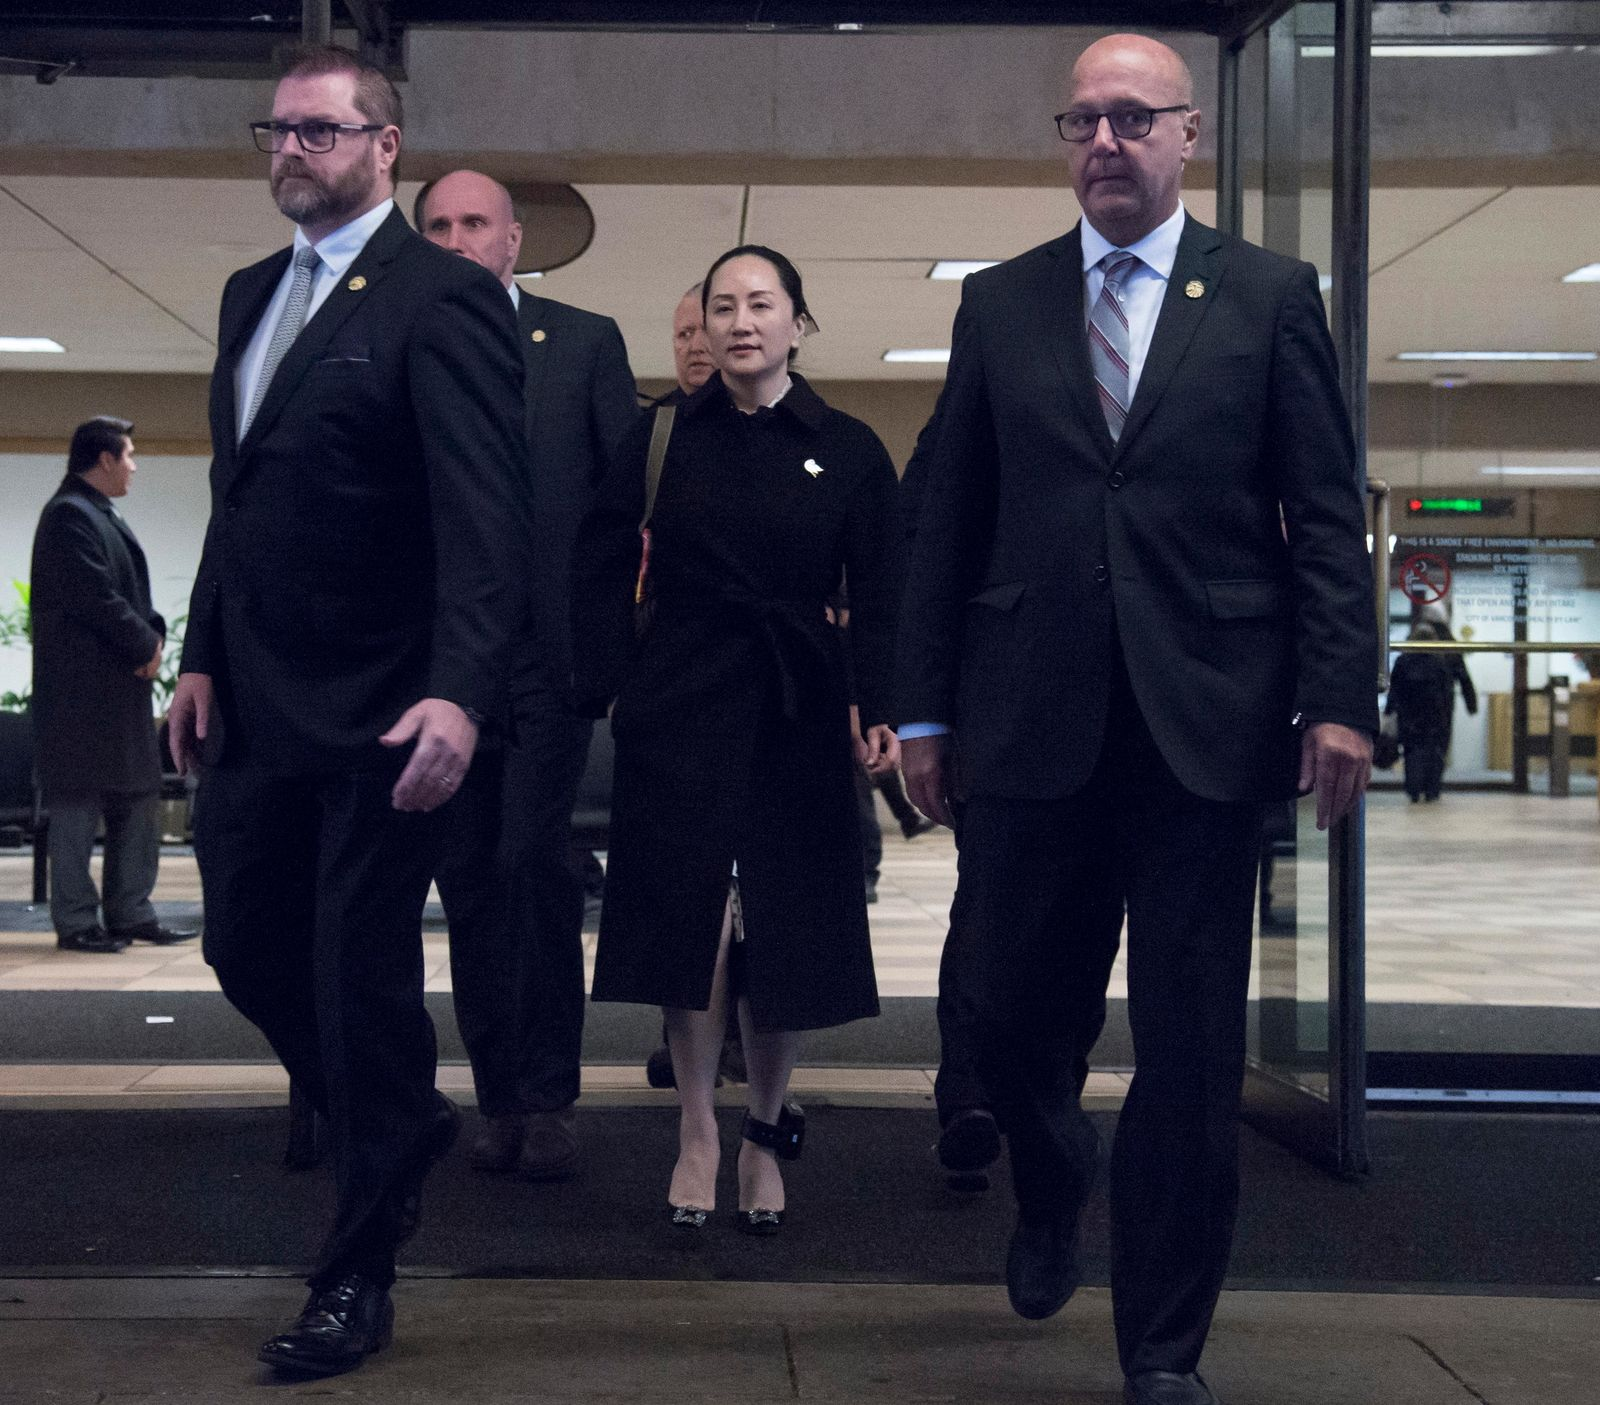 Meng Wanzhou, chief financial officer of Huawei, leaves B.C. Supreme Court in Vancouver, Thursday, January 23, 2020. (Jonathan Hayward/The Canadian Press via AP)